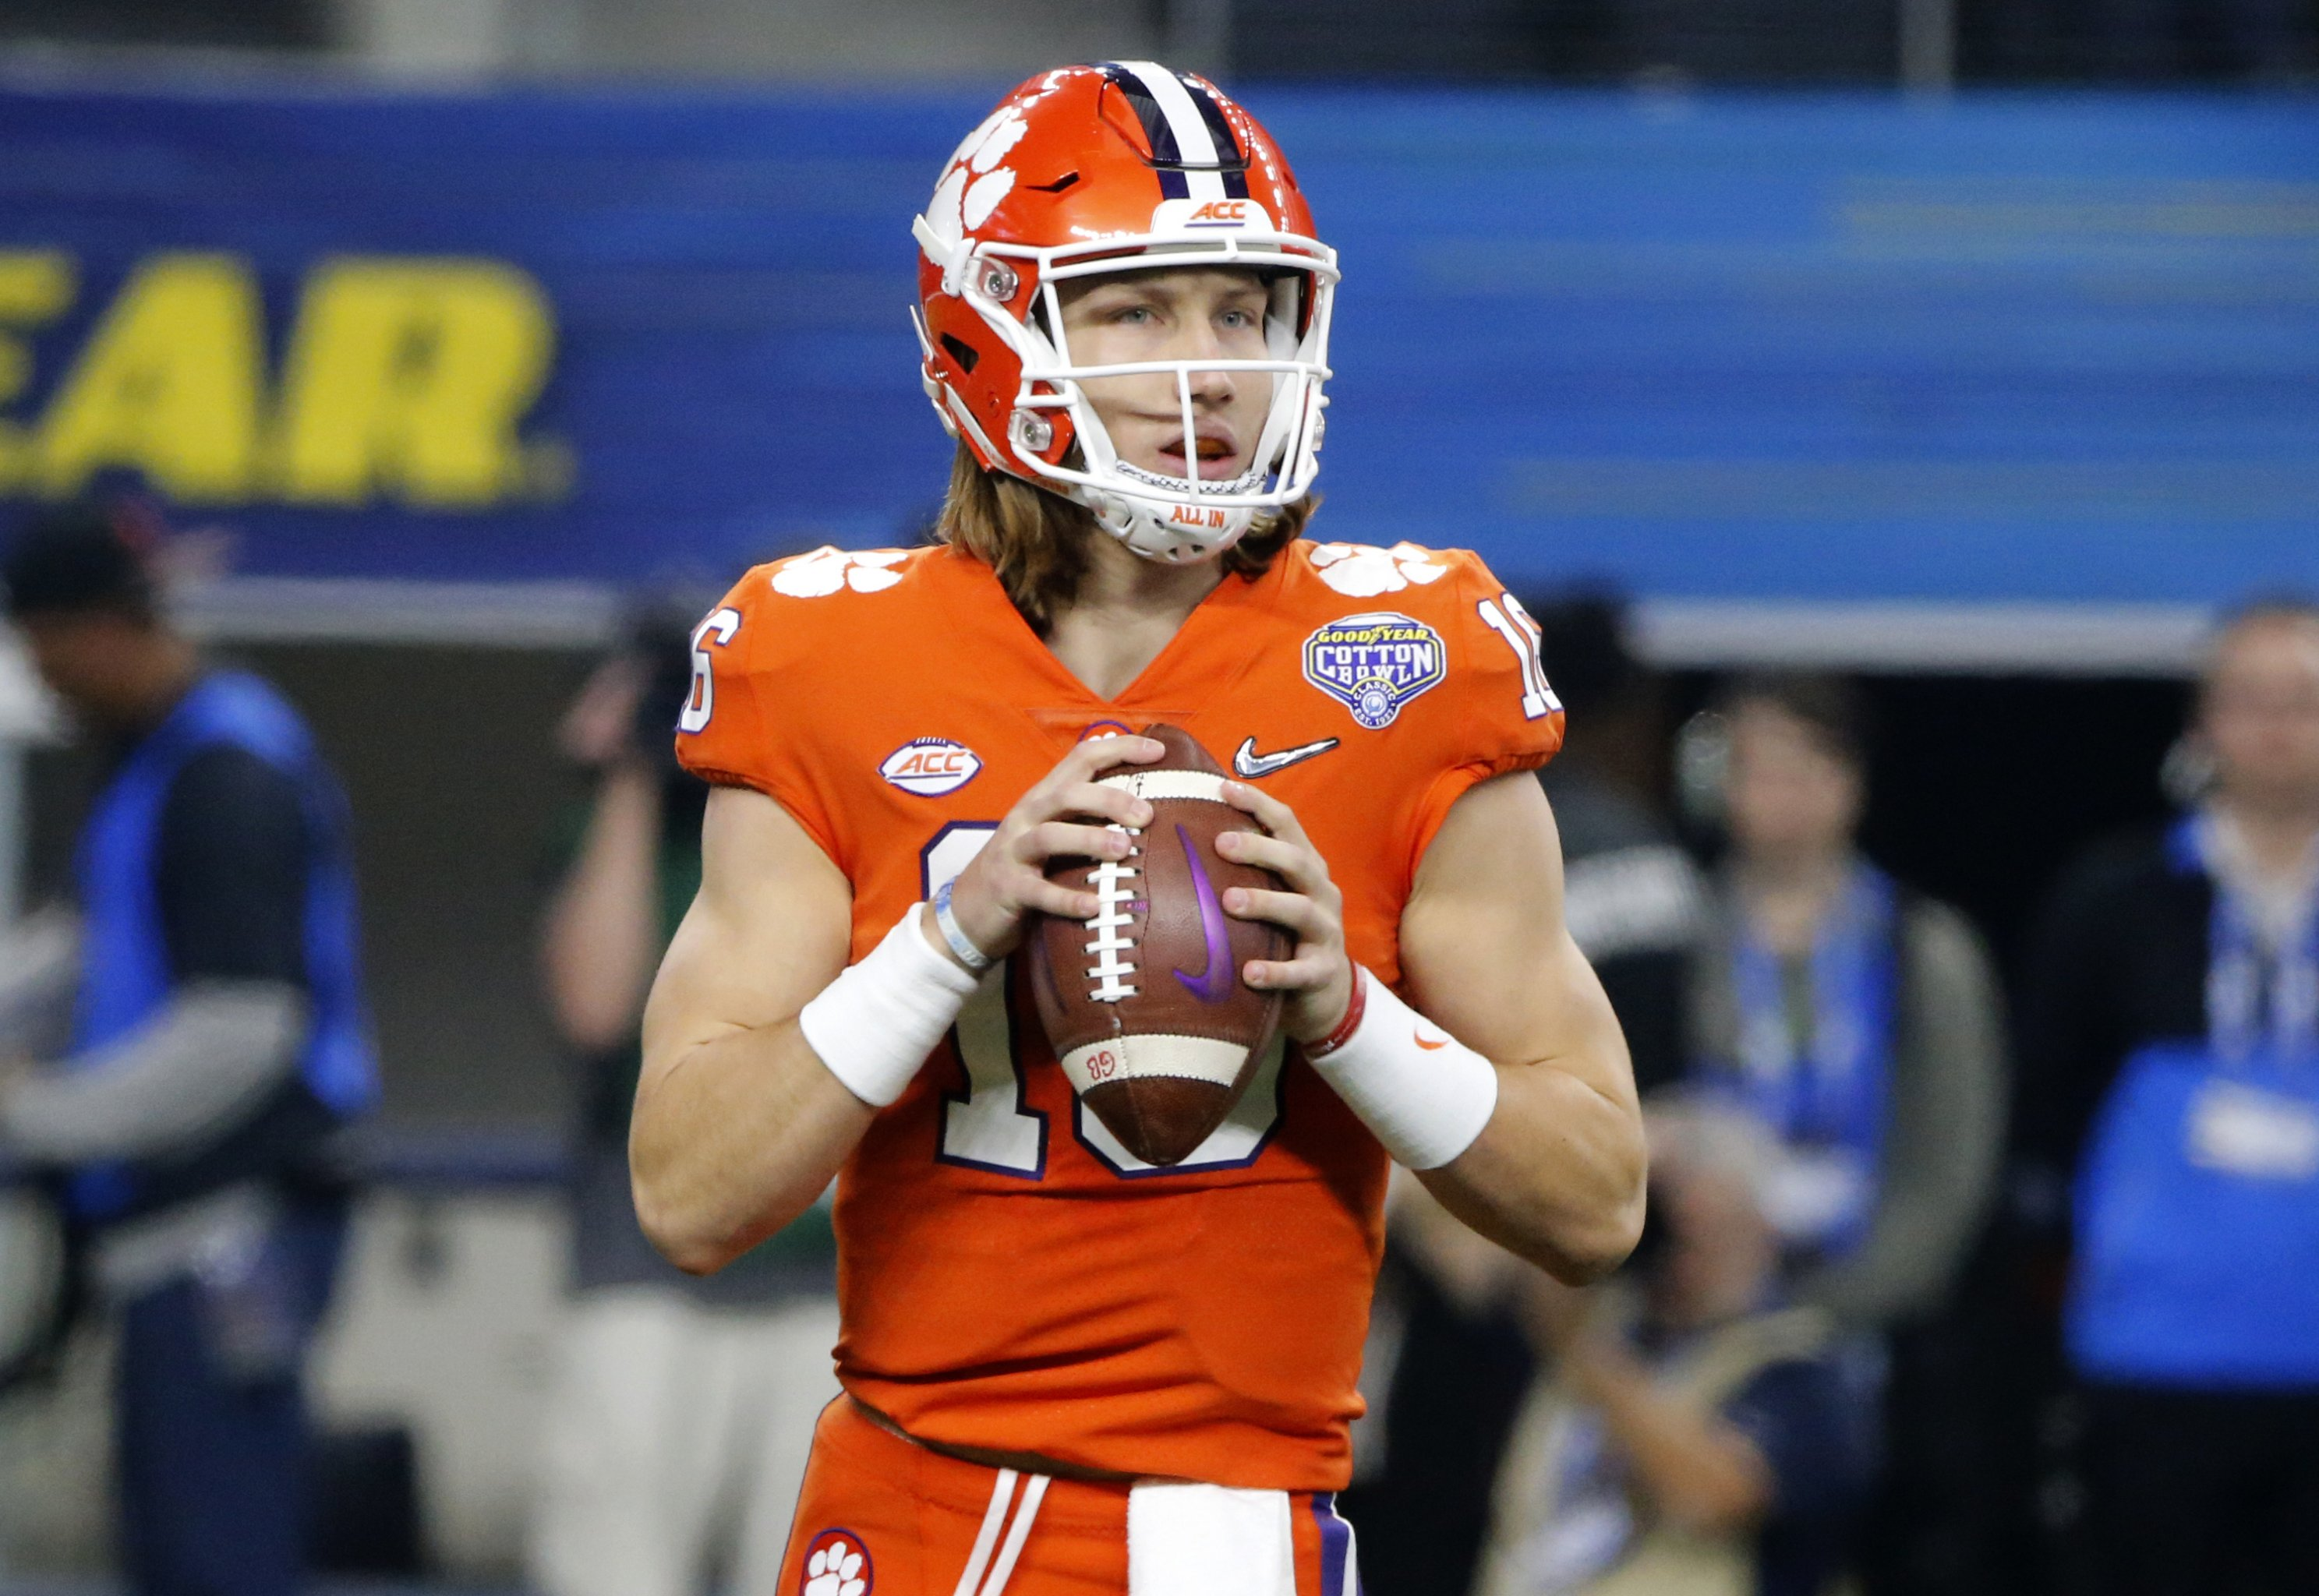 Who is number one in college football